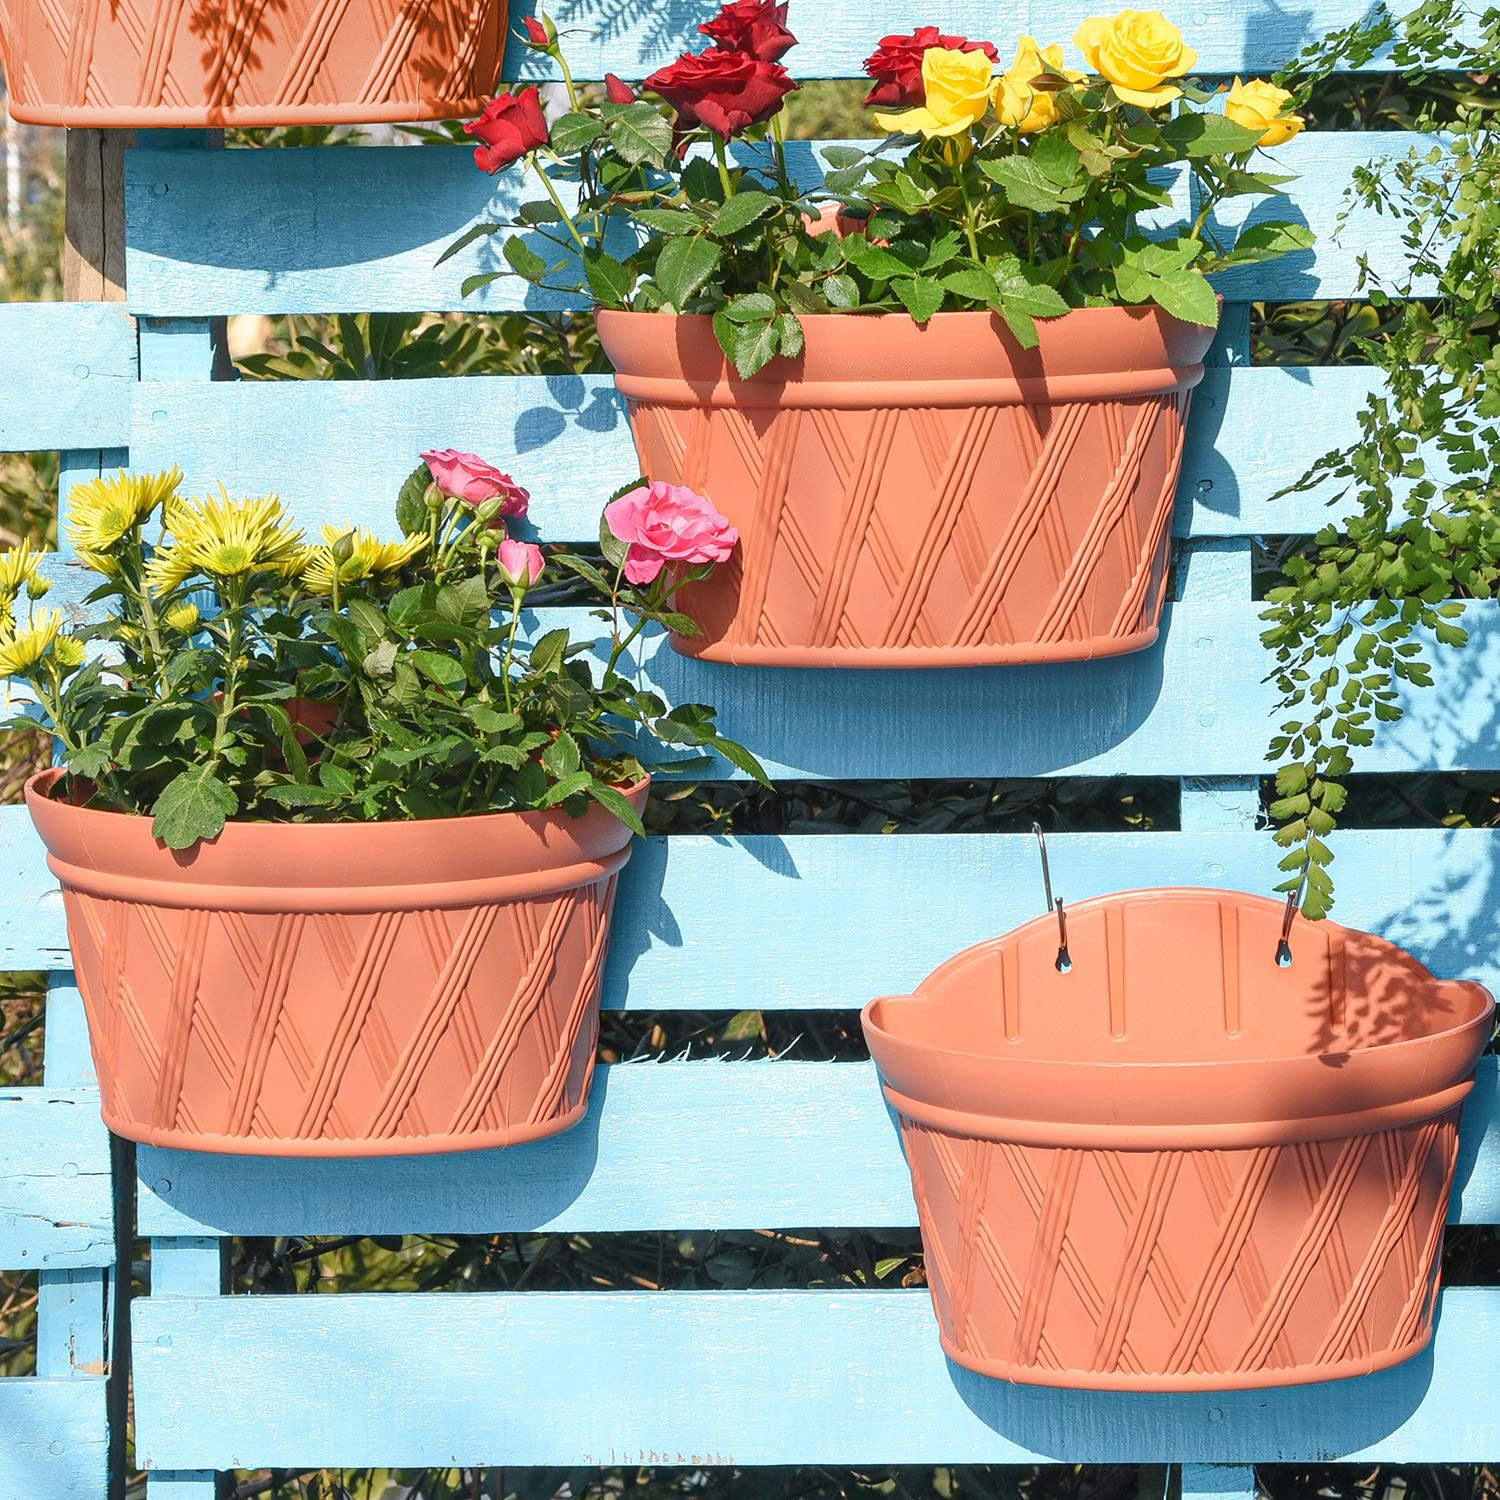 Sungmor Quality Plastic Wall Super beauty product restock quality top Hanging Semicircle 3PC free shipping - Planter